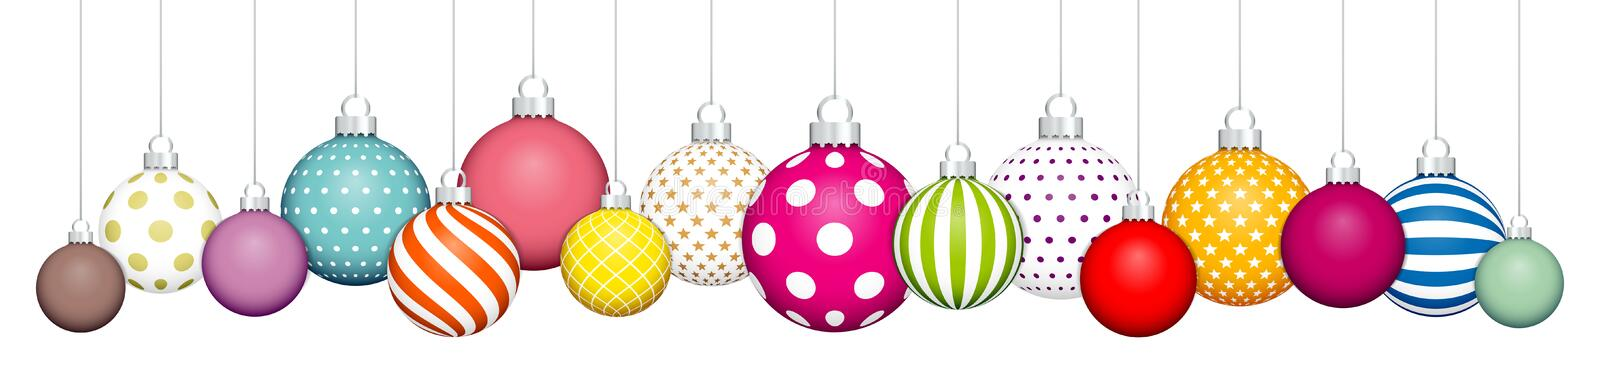 Banner Hanging Colorful Christmas Balls Pattern White Silver stock illustration